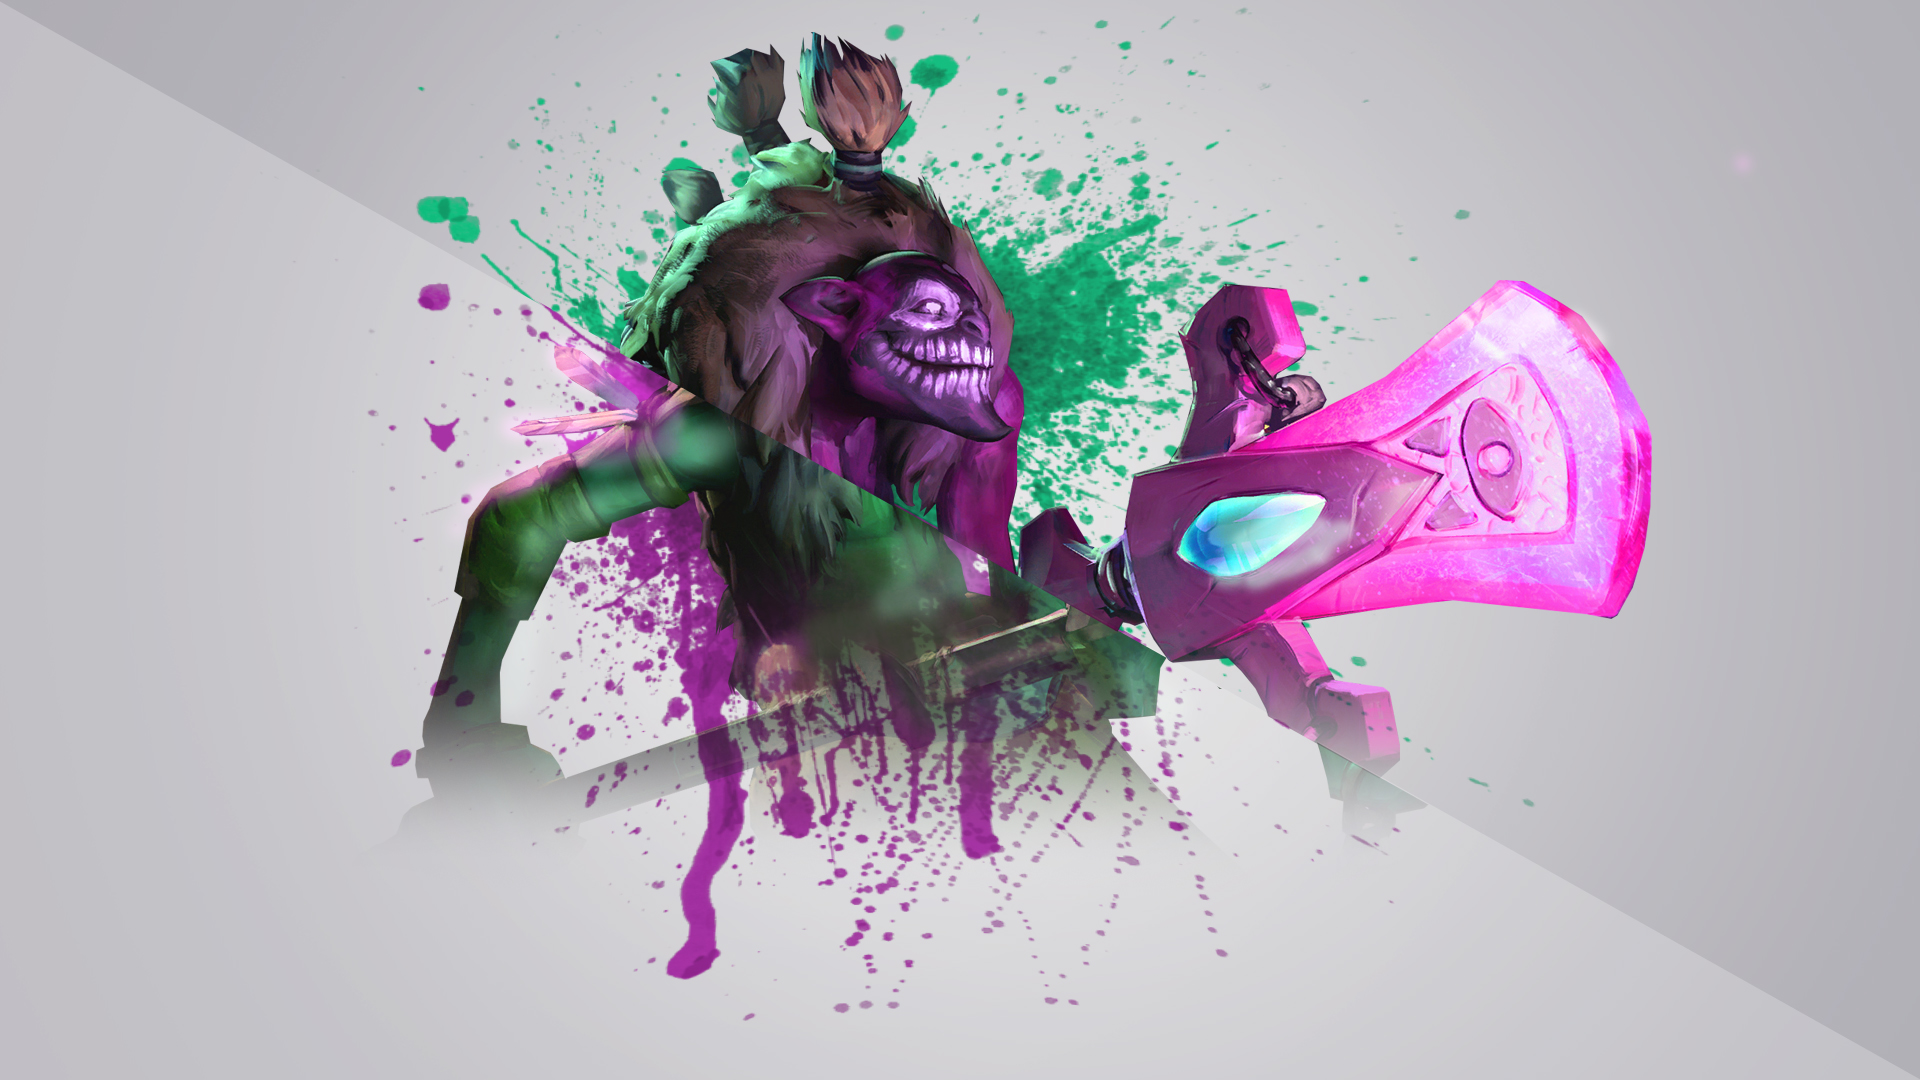 free dota 2 dazzle wallpaper 1920x1080 by dandapixel on deviantart